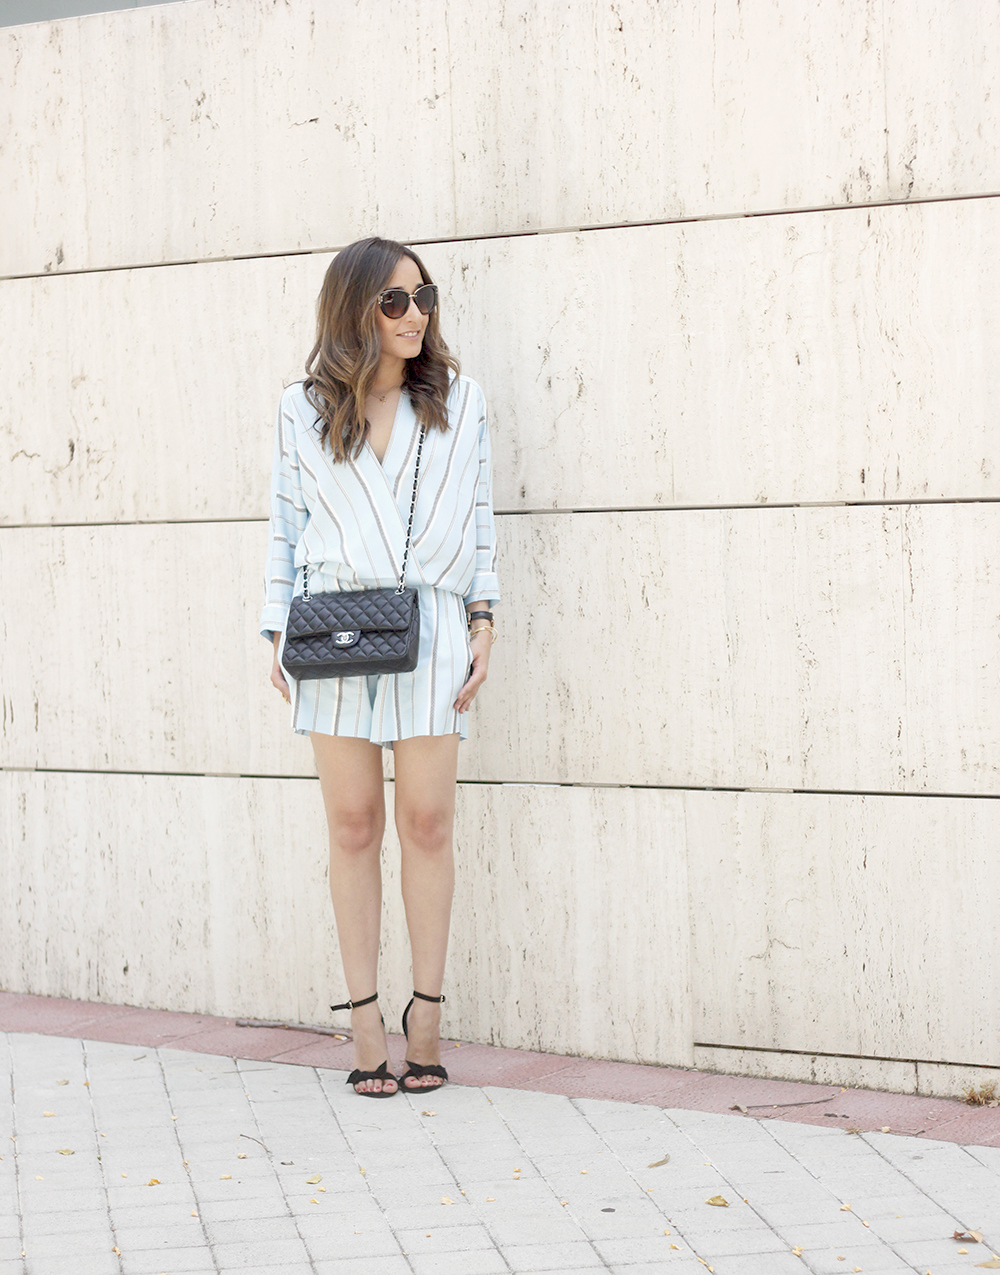 Maje Jumpsuit with stripes black heels chanel bag summer outfit street style fashion02